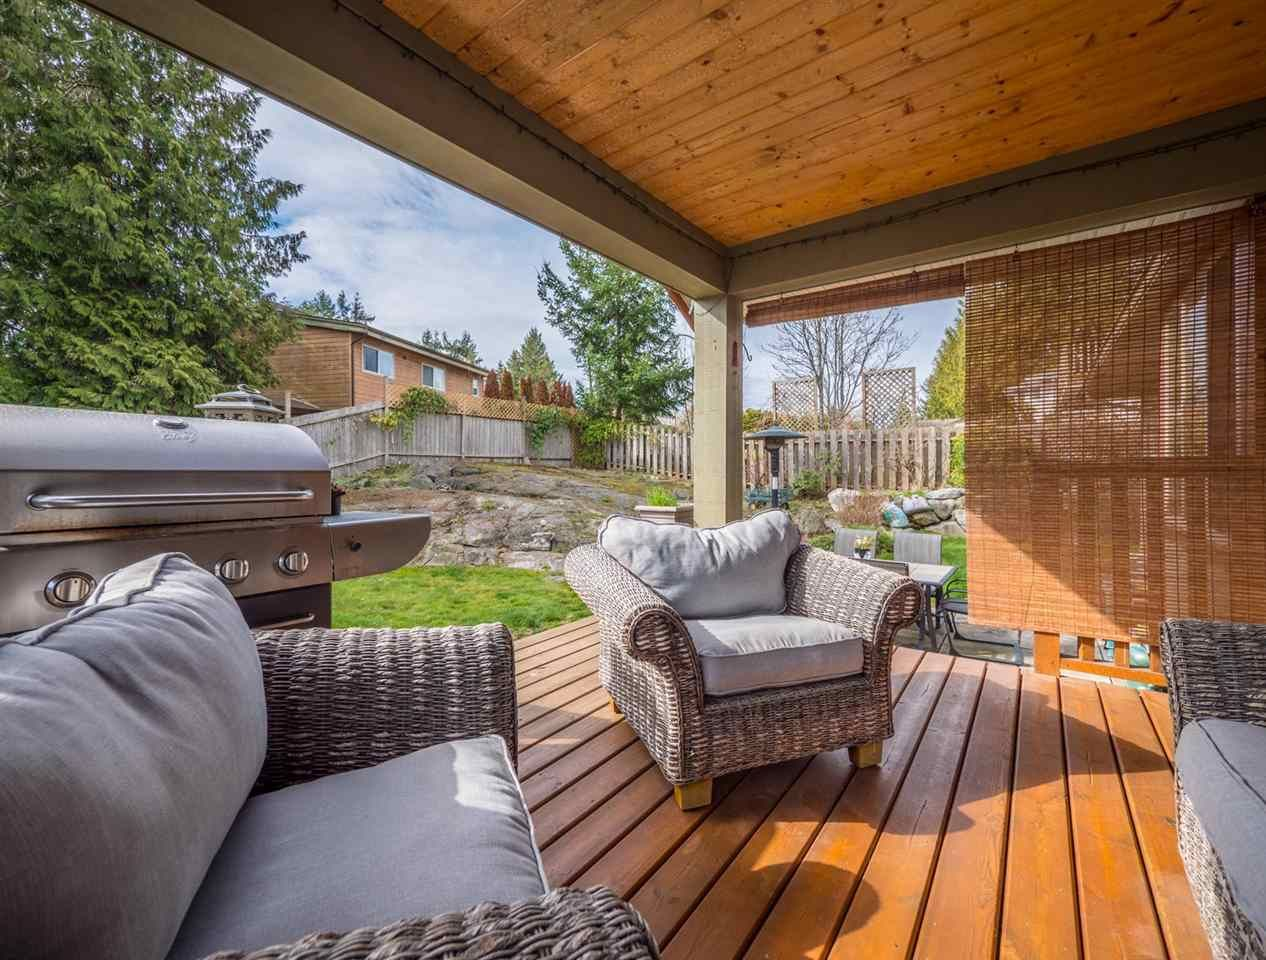 Photo 15: Photos: 6335 PICADILLY Place in Sechelt: Sechelt District House for sale (Sunshine Coast)  : MLS®# R2248834